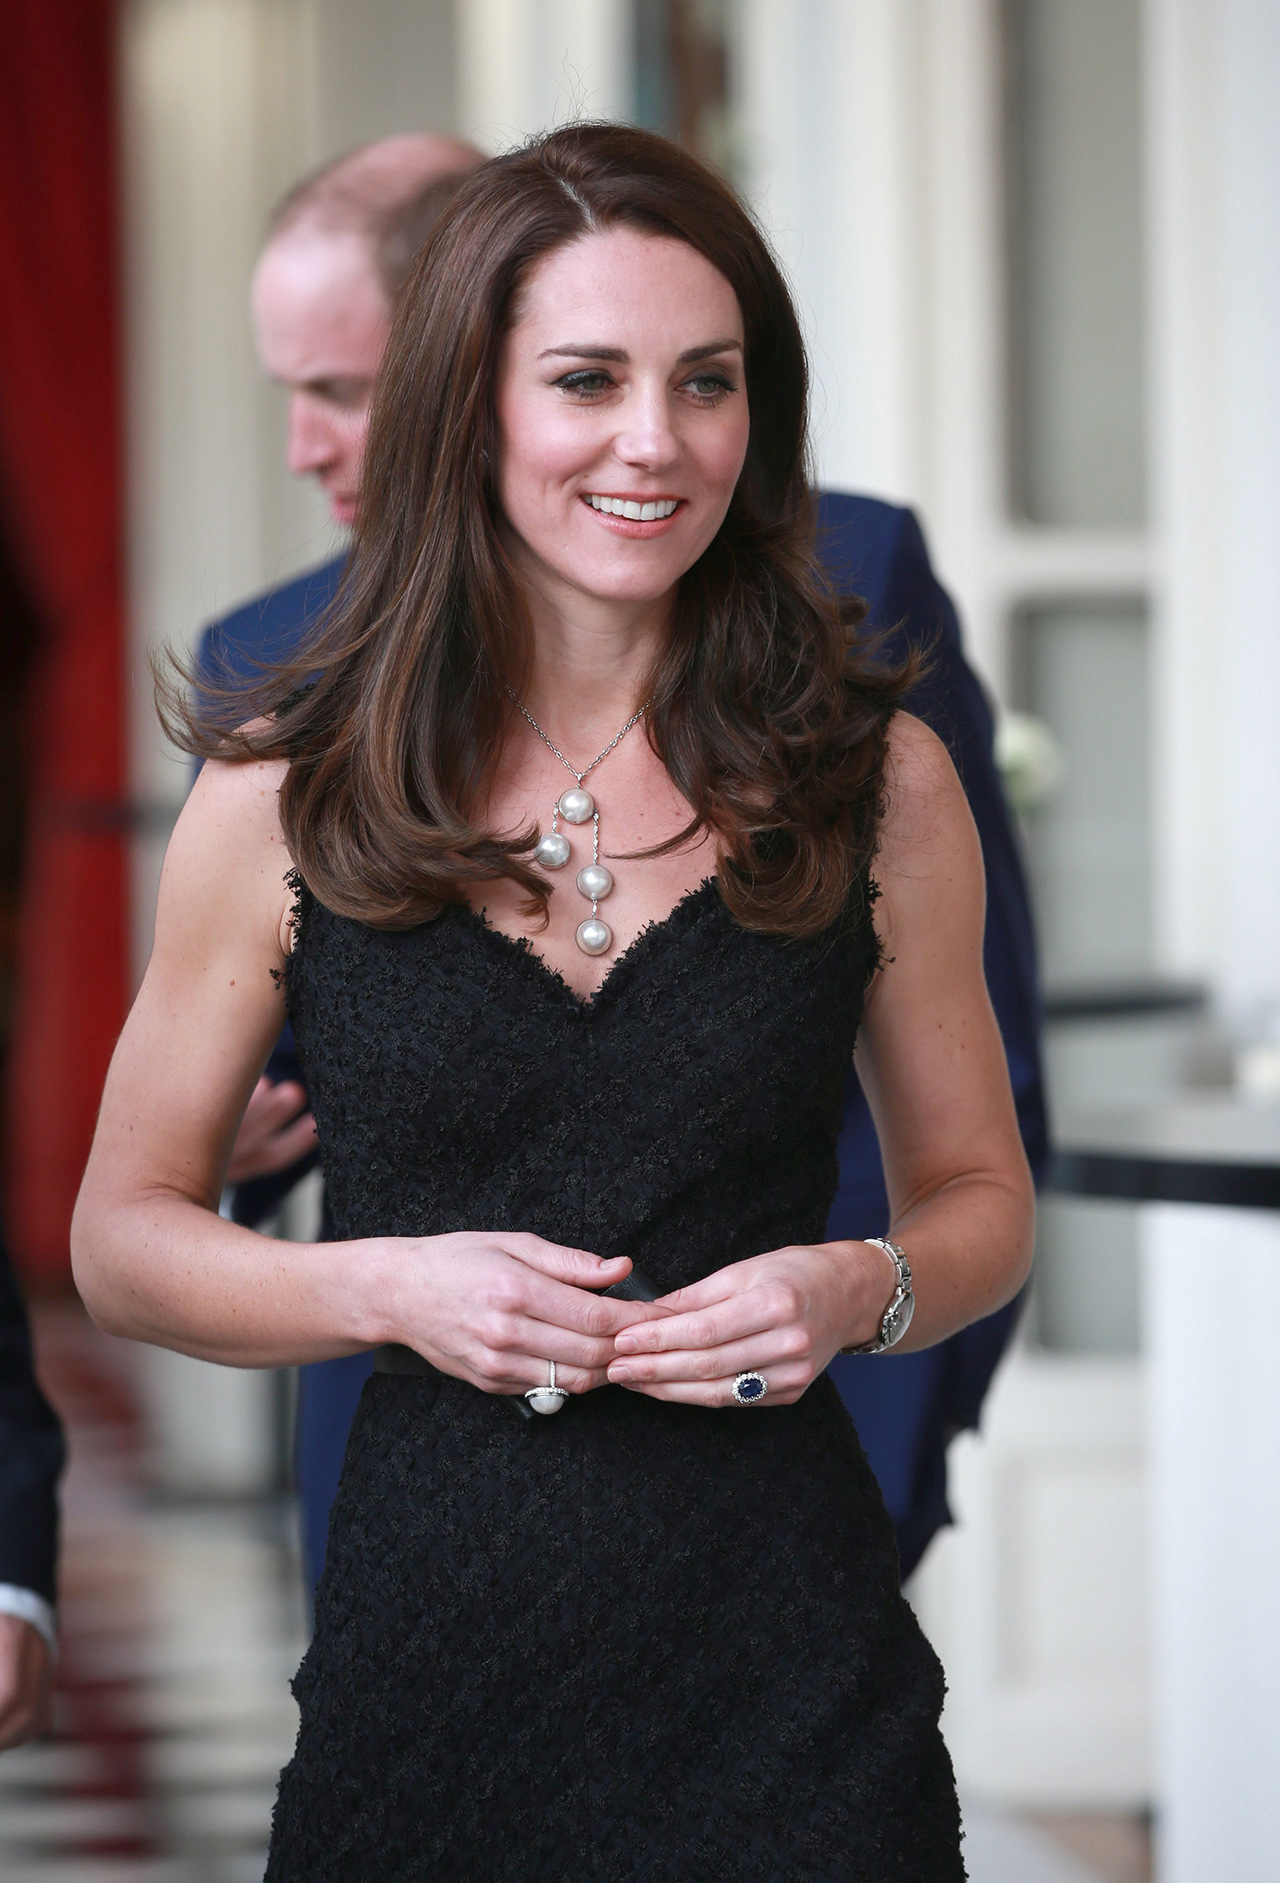 The Duchess of Cambridge attends a reception at the British Embassy in Paris, March 2017. (Rex / Shutterstock) Catherine Duchess of Cambridge attends a reception at the British Embassy Prince William and Catherine Duchess of Cambridge visit to Paris, France - 17 Mar 2017